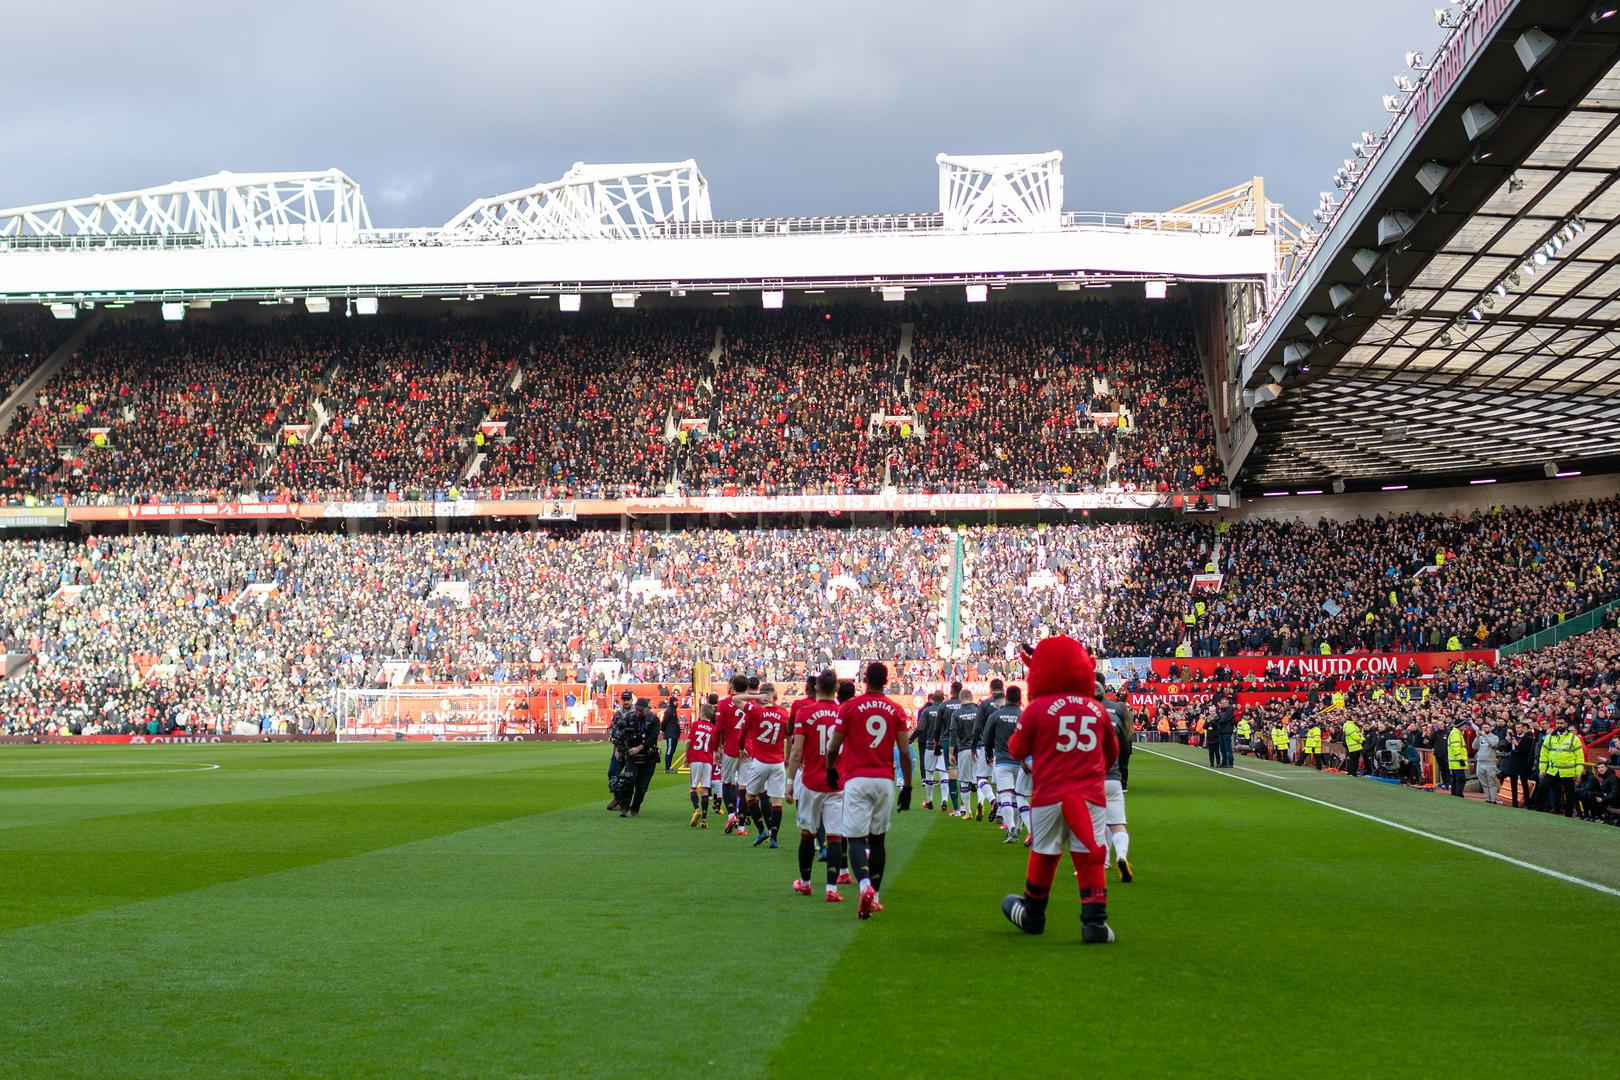 A packed Old Trafford.